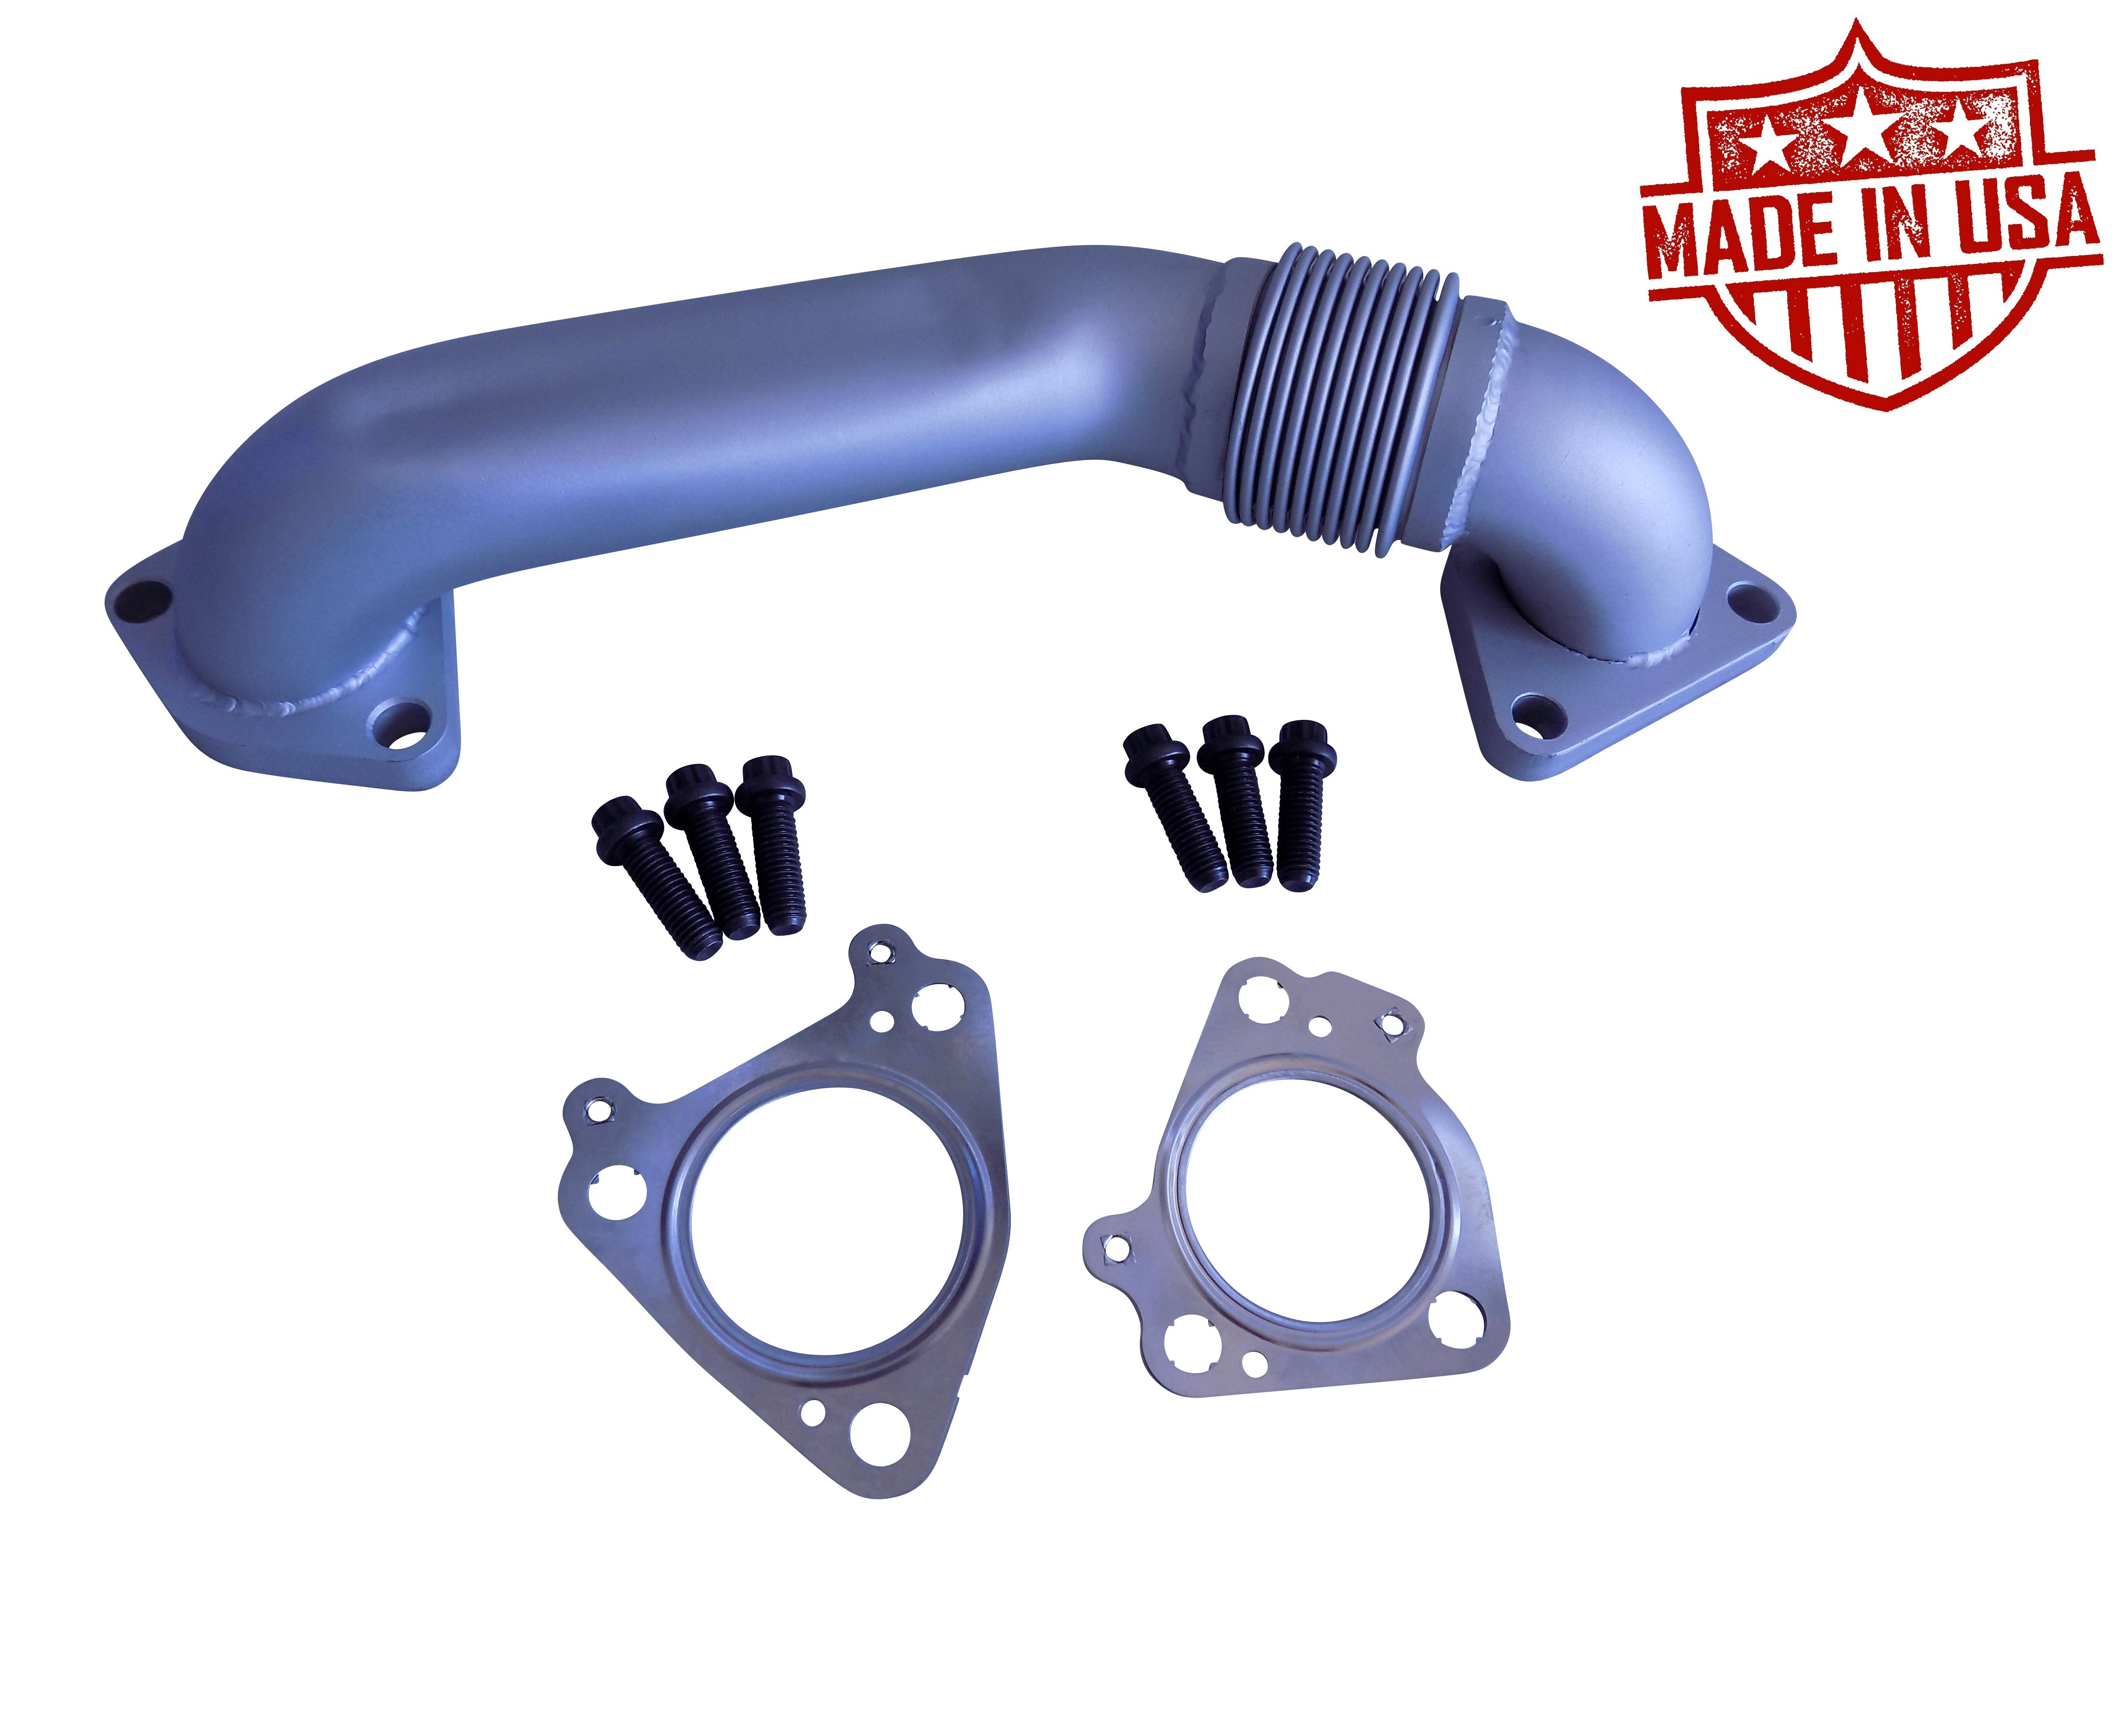 Exhaust Up Pipes Manifolds To Turbo 66l Duramax Chevy Gmc 2001 16 03 Fuel Filter Housing Lb7